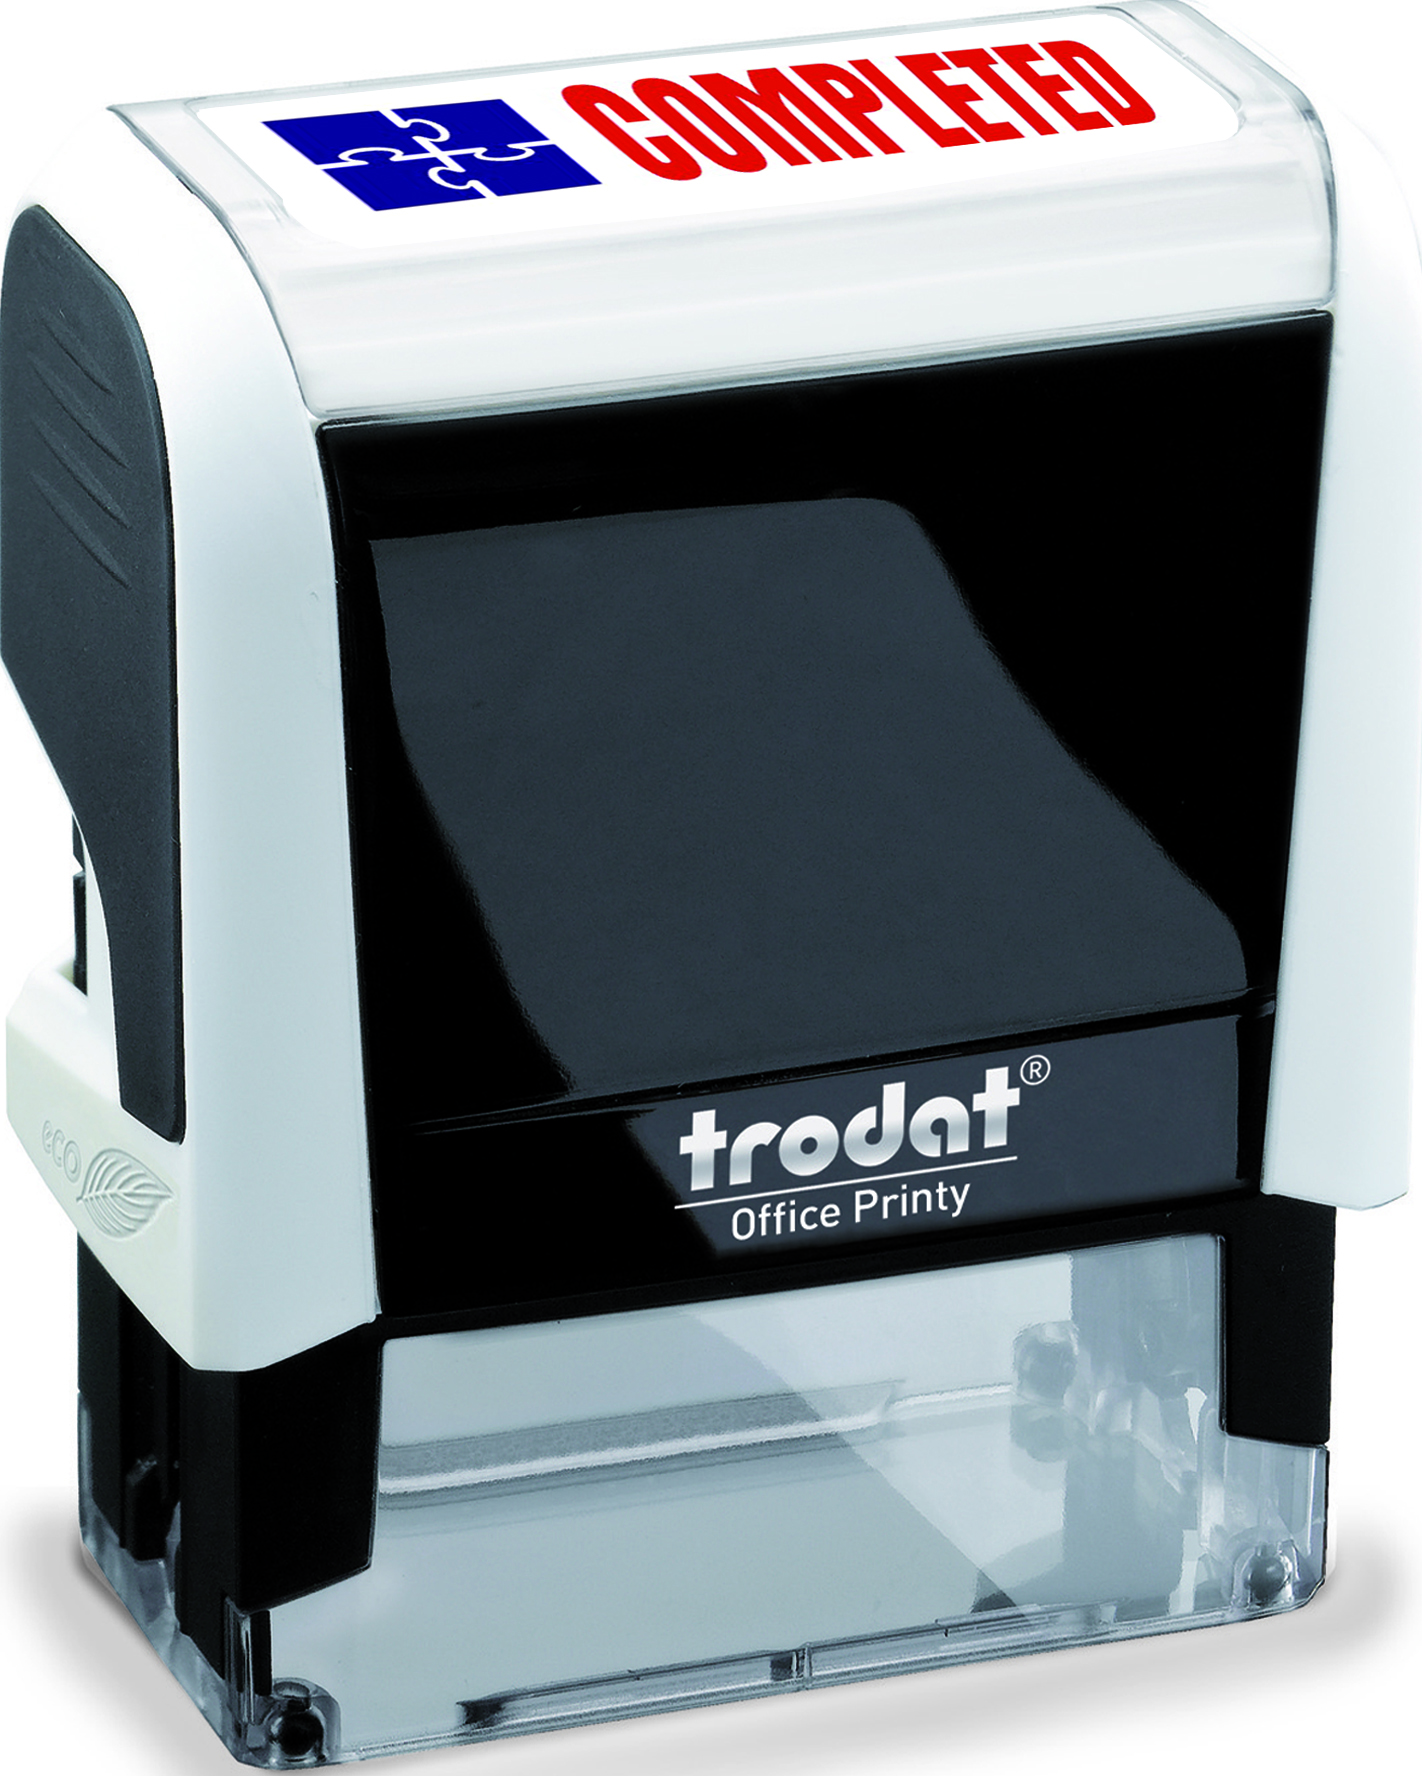 Trodat Office Printy 4912 White COMPLETED